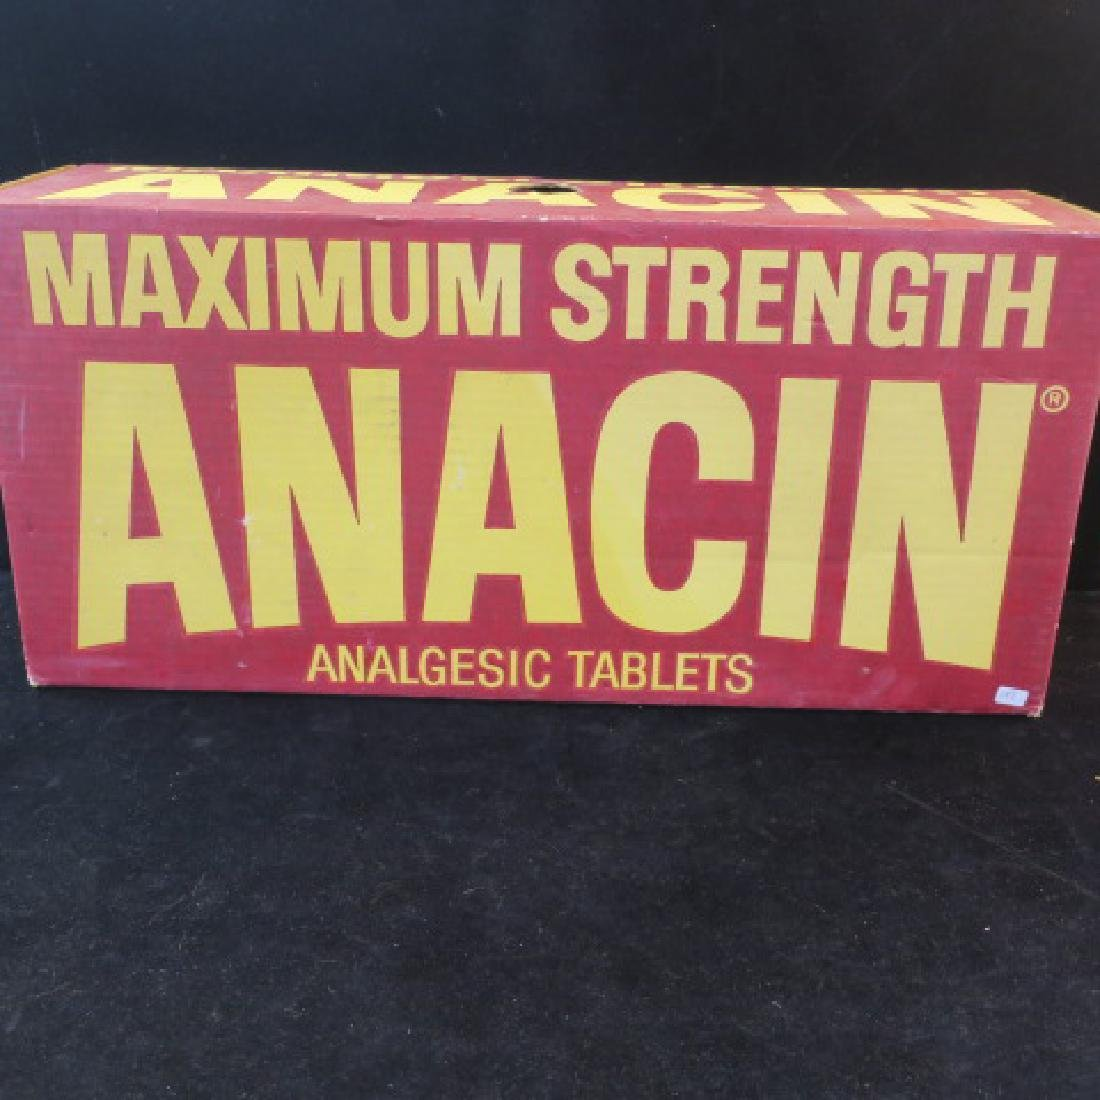 ANACIN ANALGESIC TABLETS Shipping Boxes; Green & Red: - 3